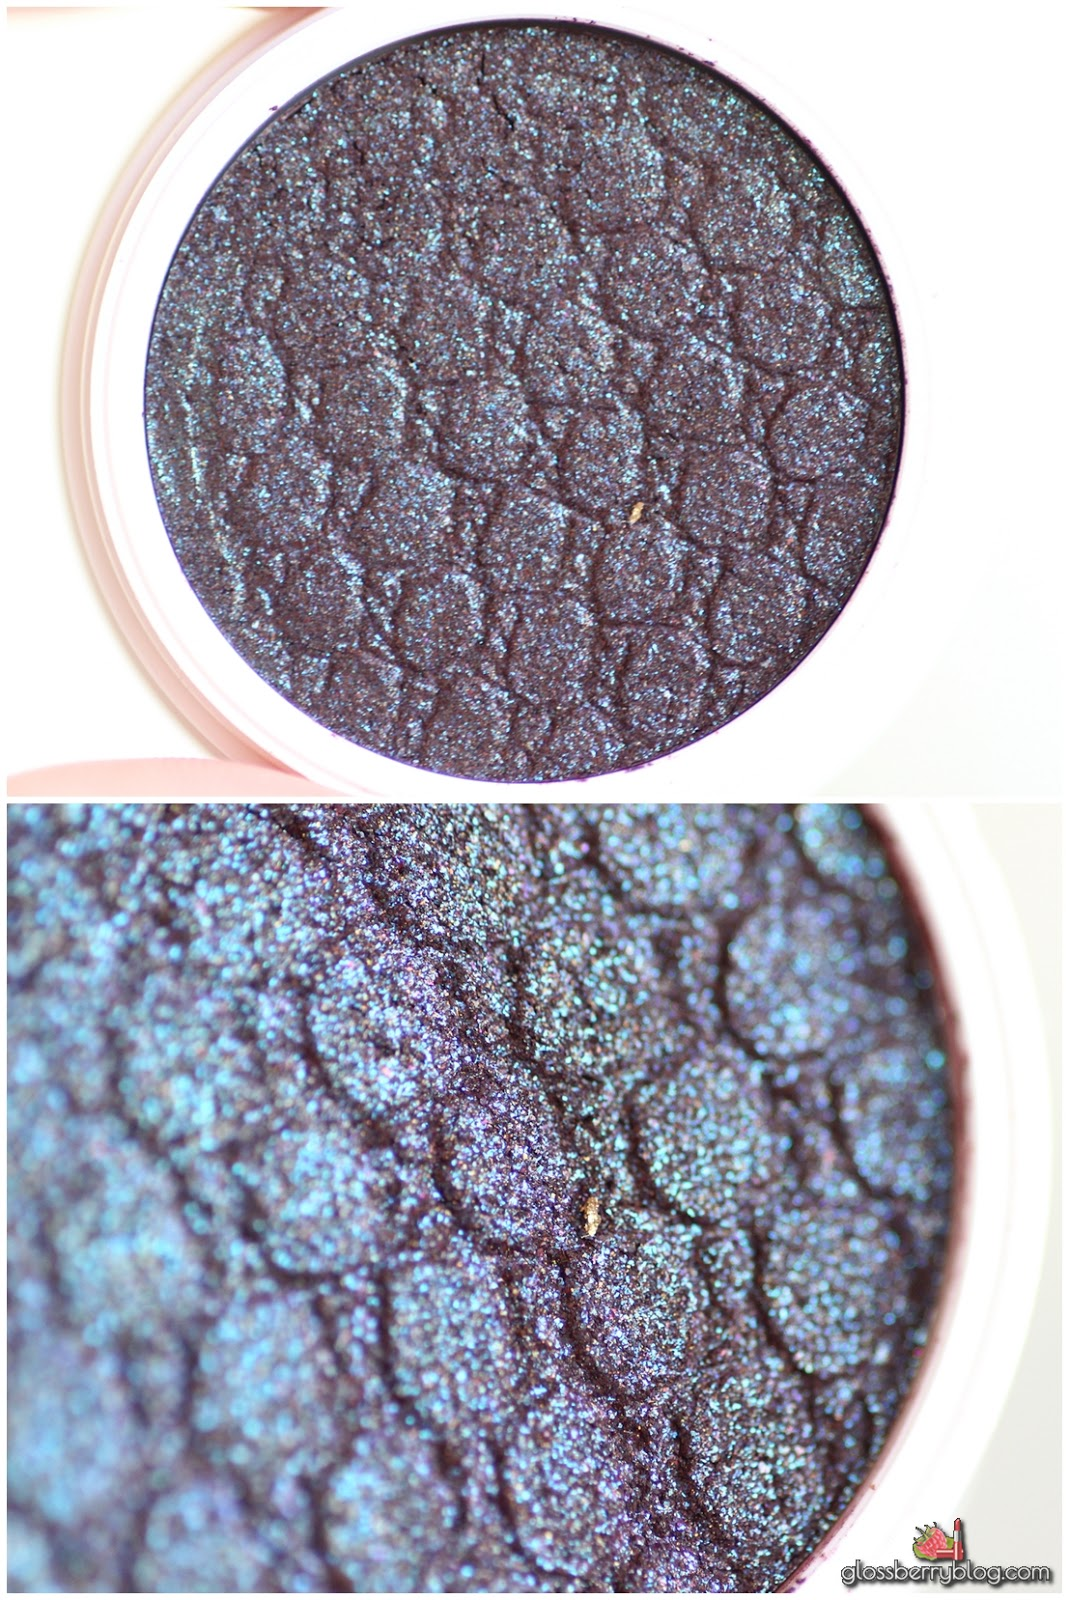 colorpop colourpop supershock super shock eyeshadow bae review swatch glossberry blog גלוסברי צלליות קולורפופ